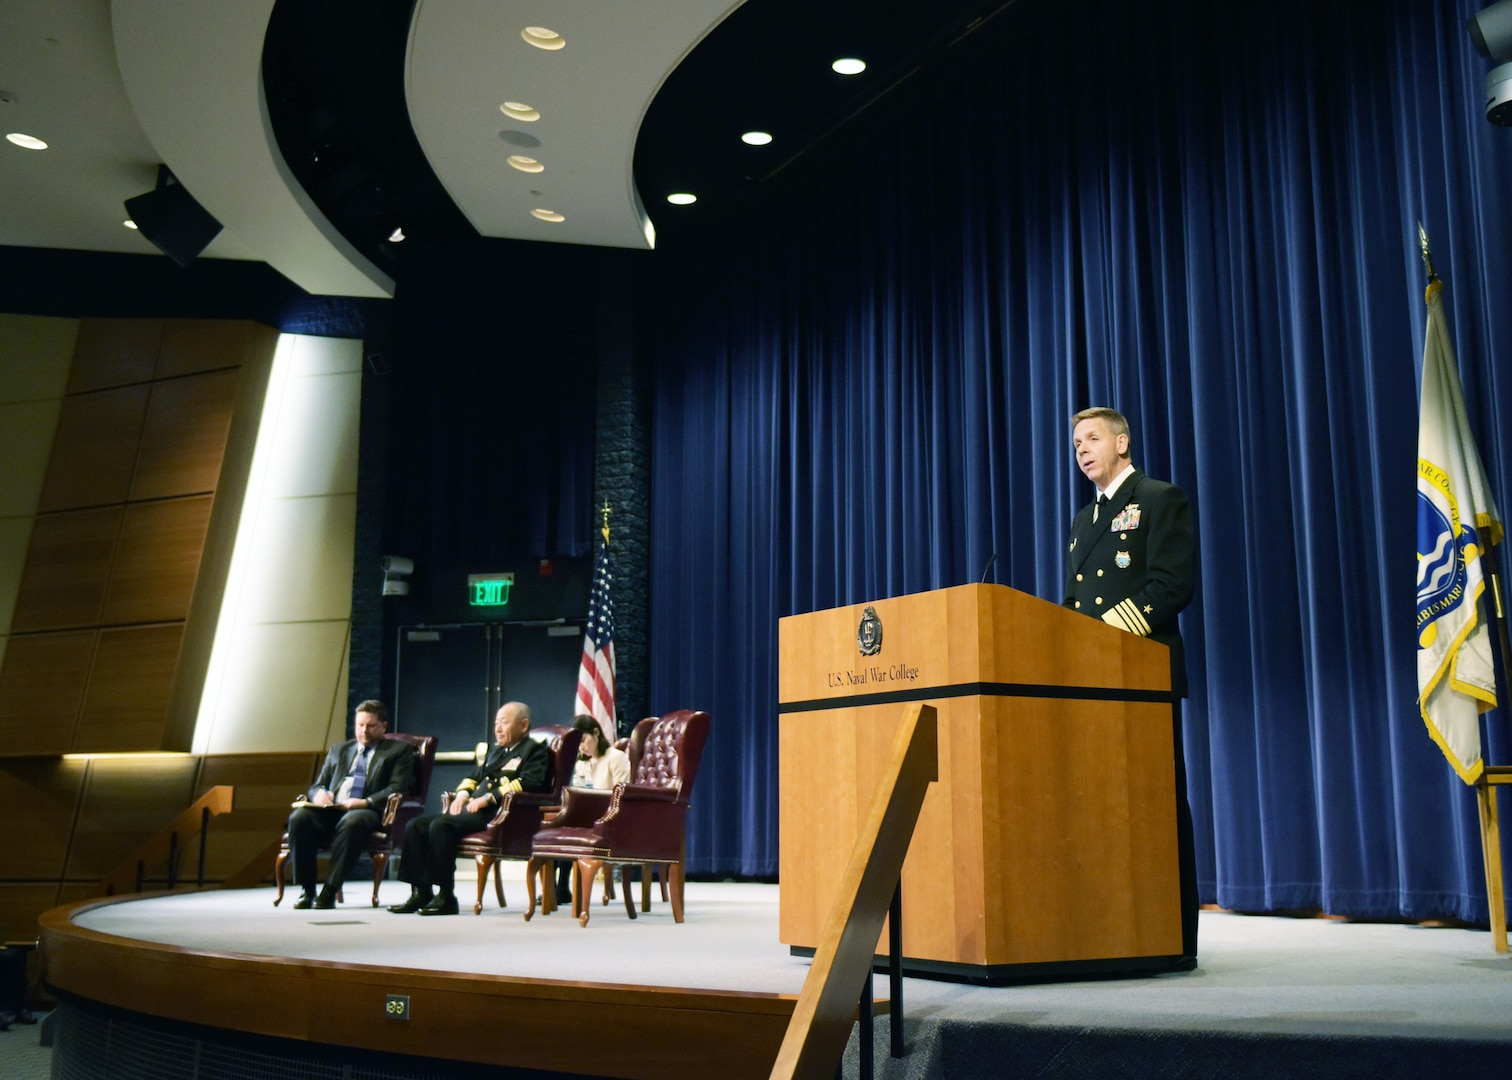 U.S. Indo-Pacific Command Leader and Japan Self-Defense Forces Chief of Joint Staff Address Students